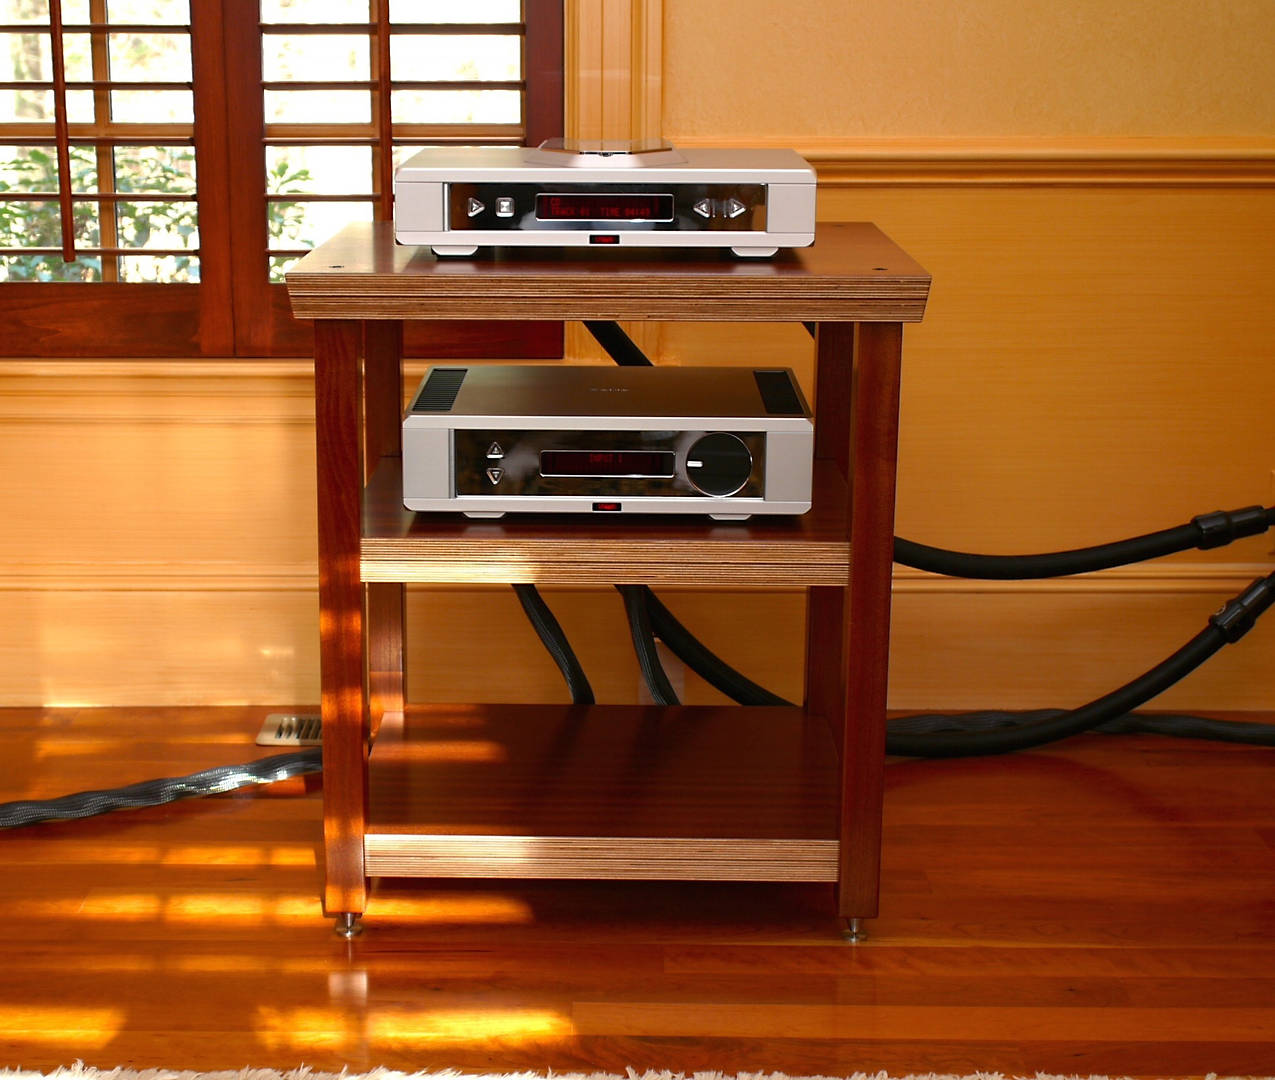 As you will see from the photos- my system is quite simple. Rega Isis cd player and Osiris integrated amplifier, Kubala Sosna Elation balanced interconnects and speaker cables, Stage III Kraken power cords, a dedicated electrical circuit with an audiophile outlet, Synergistic research acoustic art system on the walls and floor and the Magico Q1s. Prior to your rack, the components were on a piece of furniture. So this is my first experience with a proper rack in my home. All I can say is wow, what an impact it has had! Of course the rack is absolutely stunning, and the african sapele works very well with the color palette in the room. But the aesthetics are only so important. The music is simply glorious. More tonally accurate, immediate and with incredible extension. Recording locations become palpable. Instruments and vocals seem that much more realistic. Dynamics are phenomenal. I get it now. I'm glad I made the investment. So I just wanted to thank you and your colleagues for providing such a terrific product. I will cherish the rack for years. I snapped a few photos that I will send along. Not sure if it will take a few emails to get to you.  Robert M. Brenner, M.D.